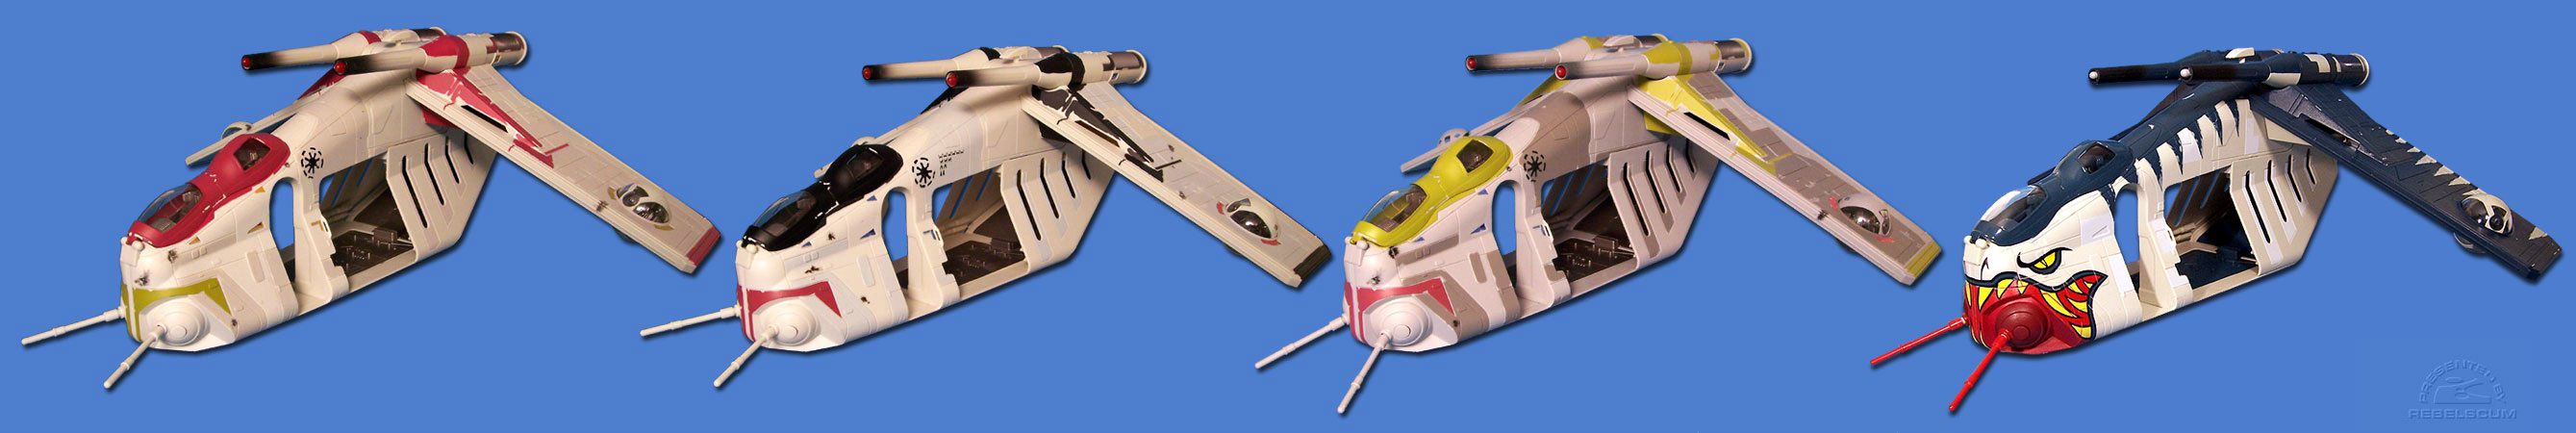 SAGA Republic Gunship (2002) | CLONE WARS Command Gunship (2003) | ROTS Republic Gunship (2005) | TSC Republic Gunship (2006)